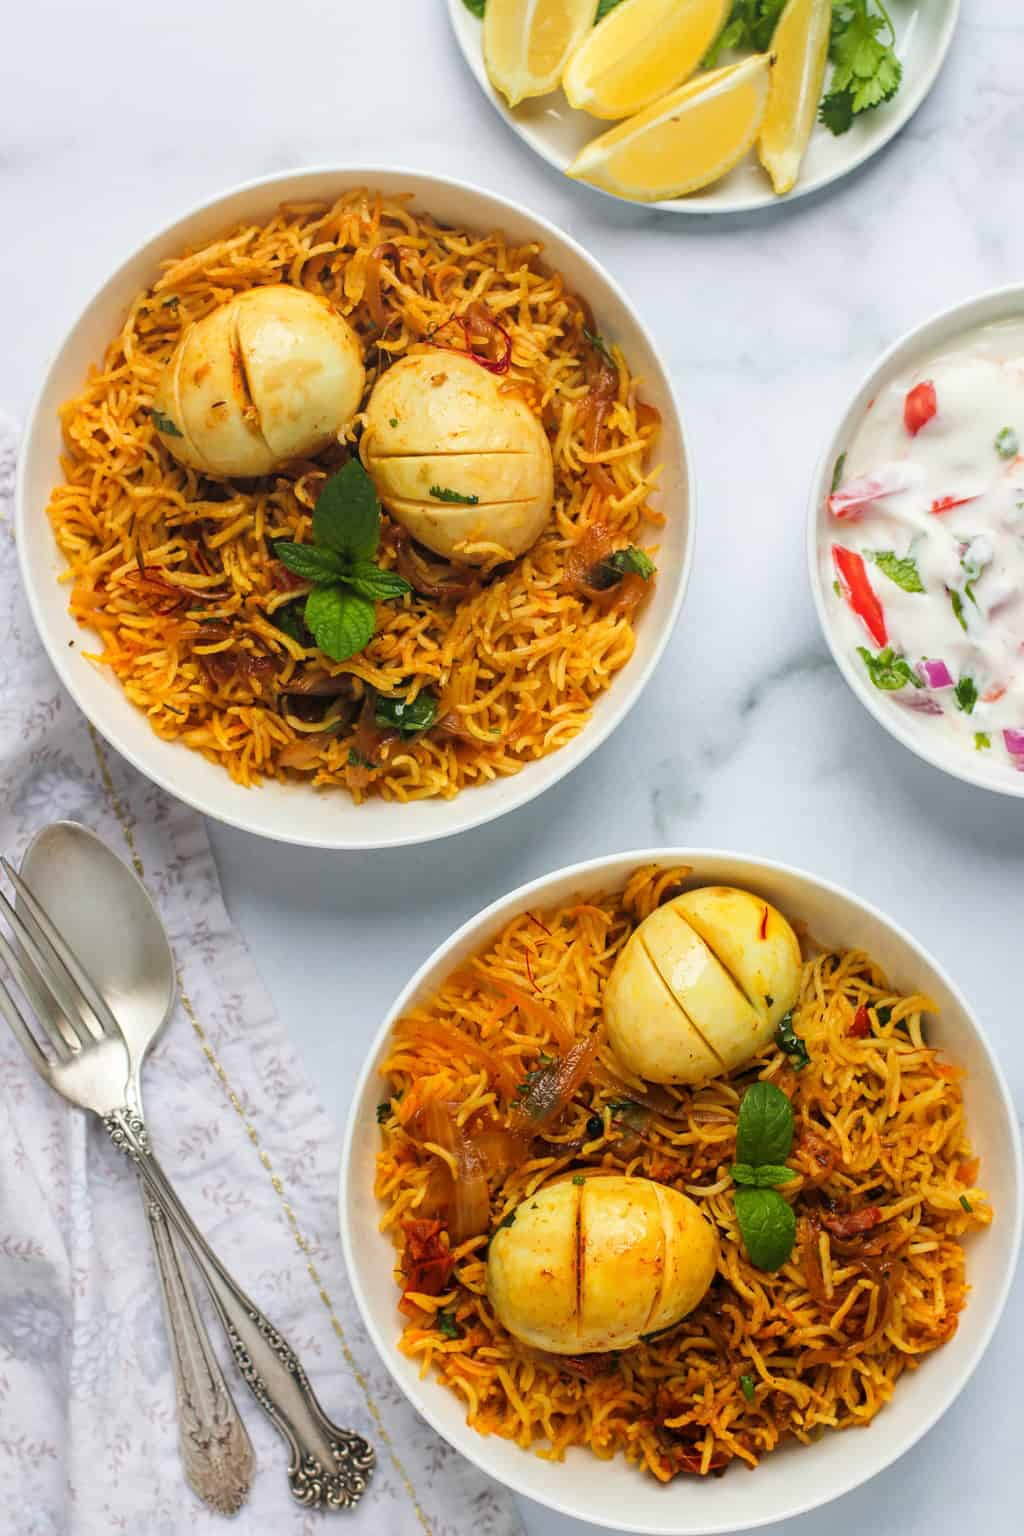 egg biryani served in 2 white bowls with raita and lemon